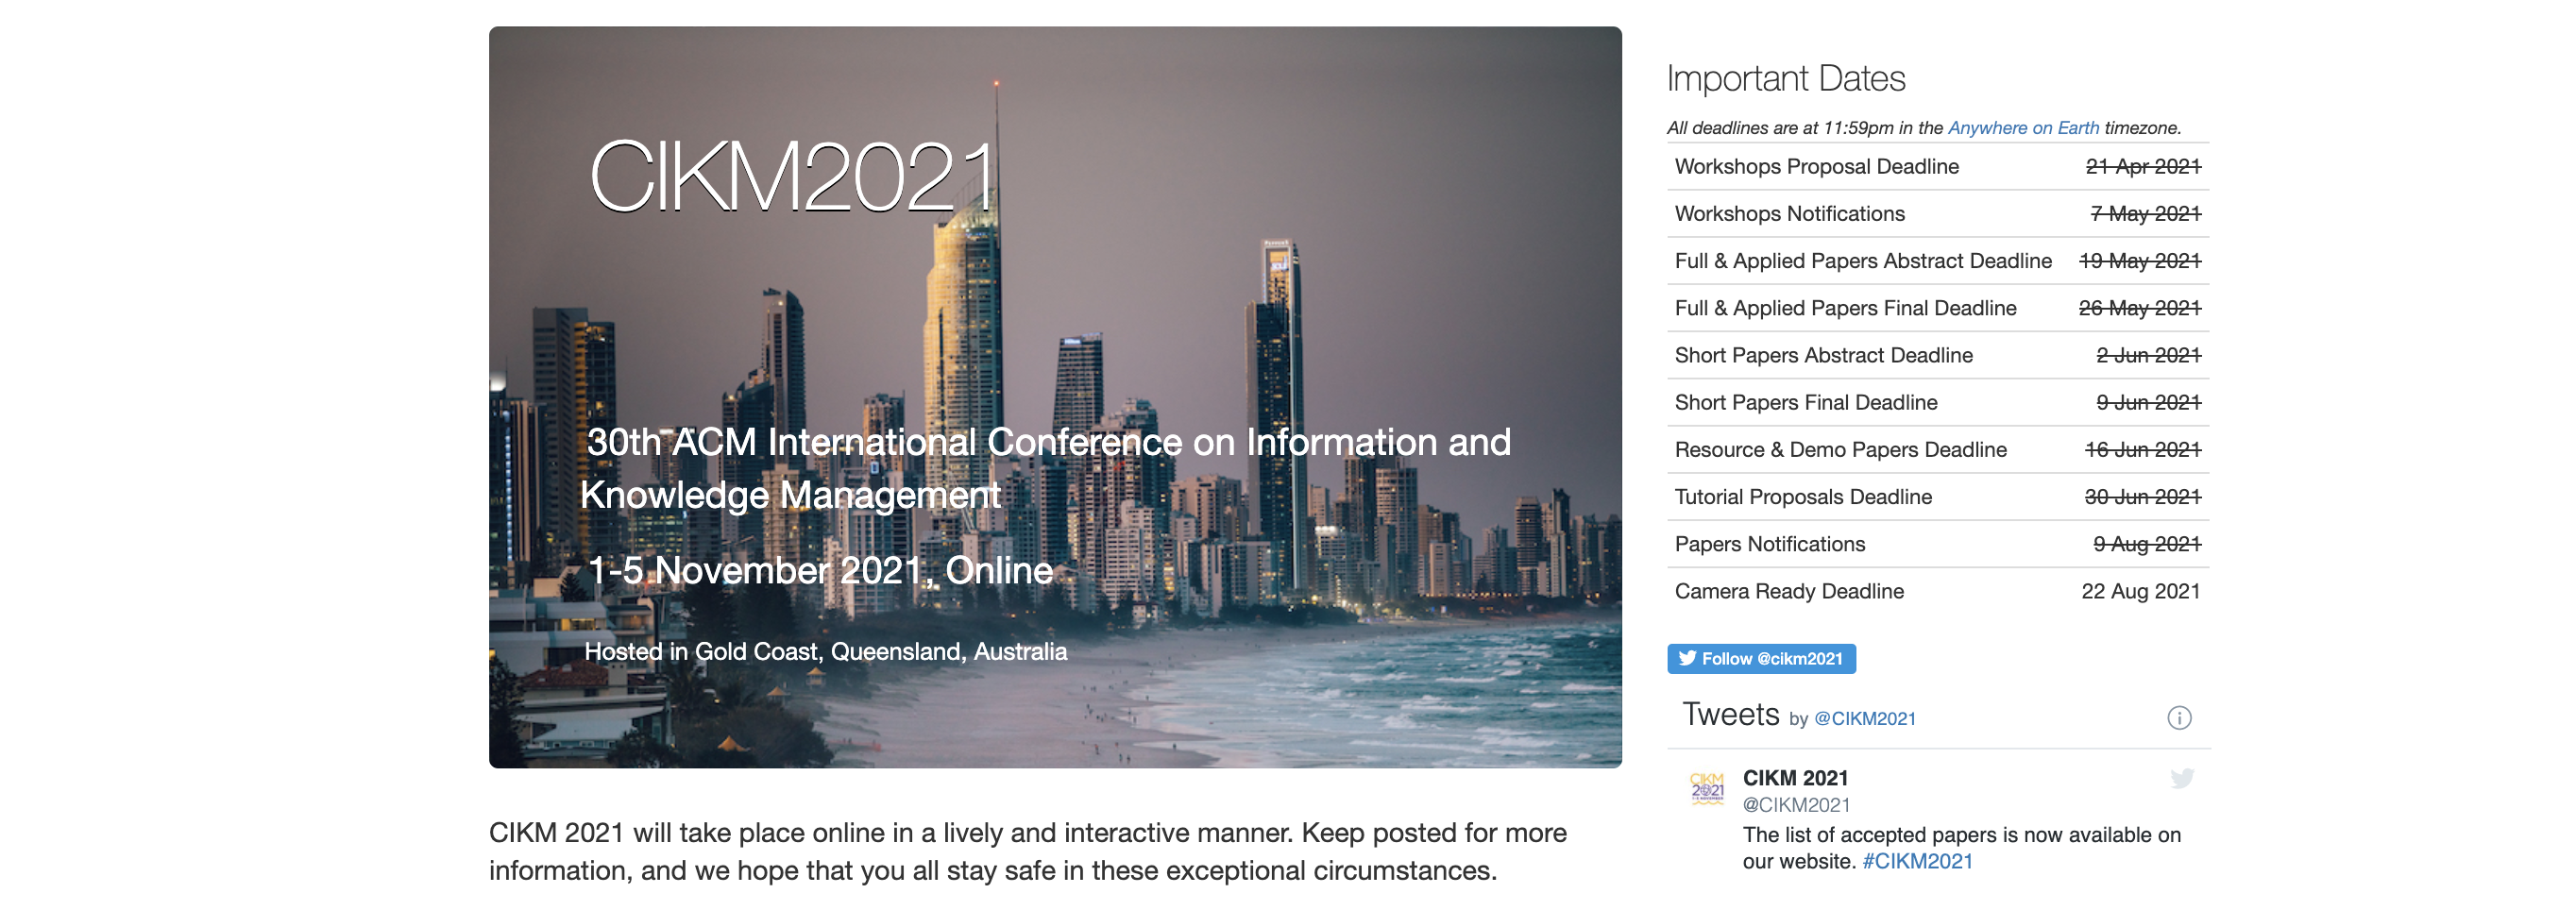 Five Papers Accepted at CIKM 2021